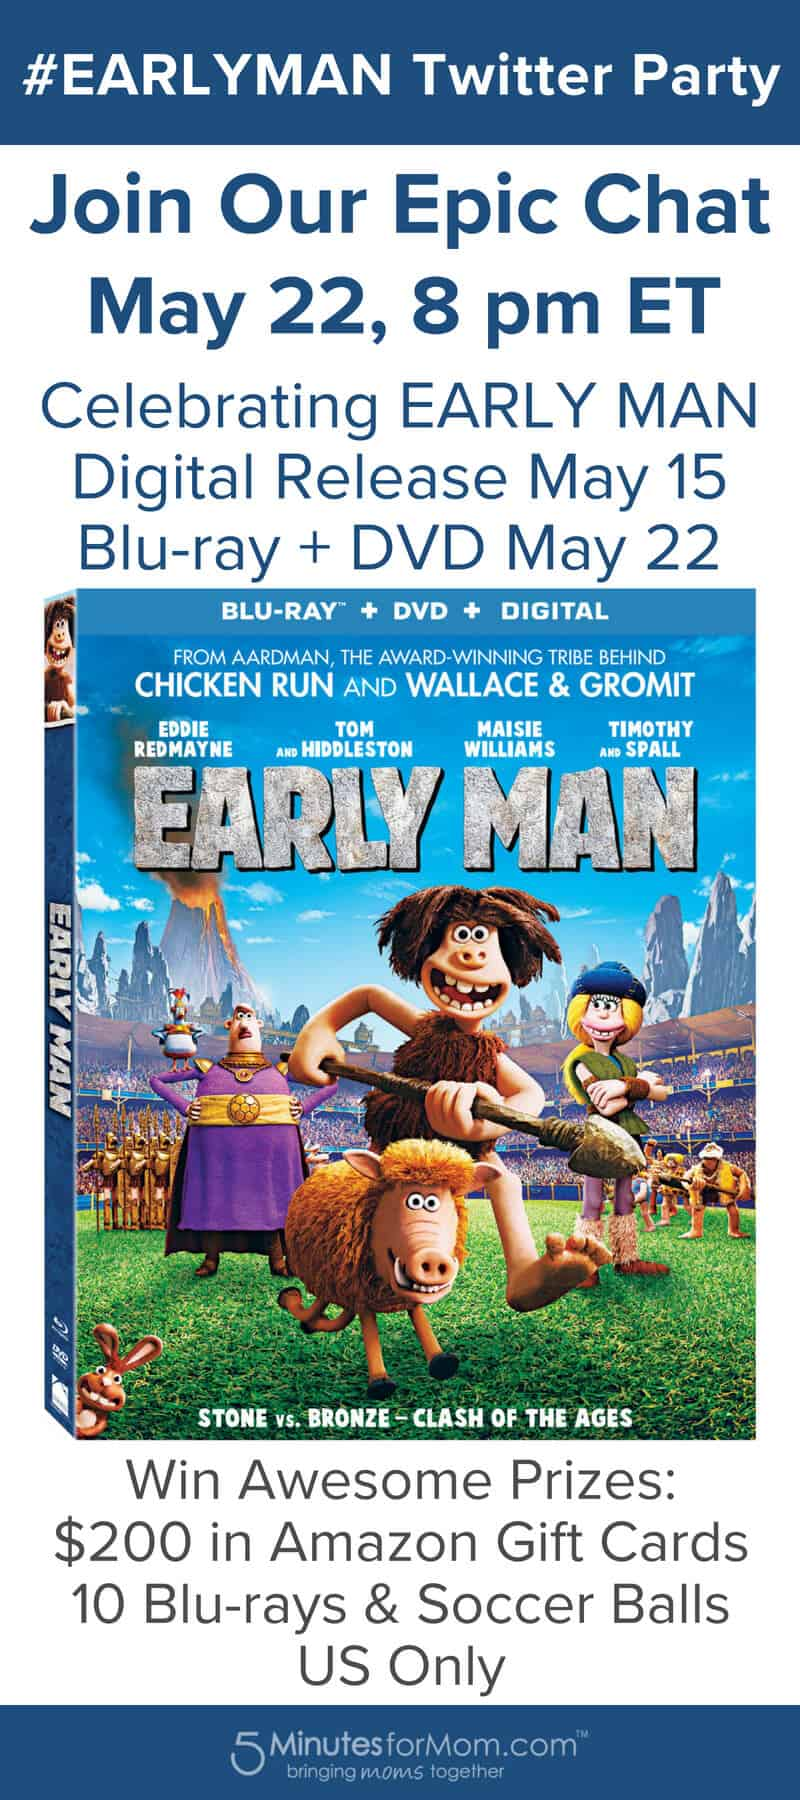 EarlyMan Twitter Party - Join Our Epic Chat